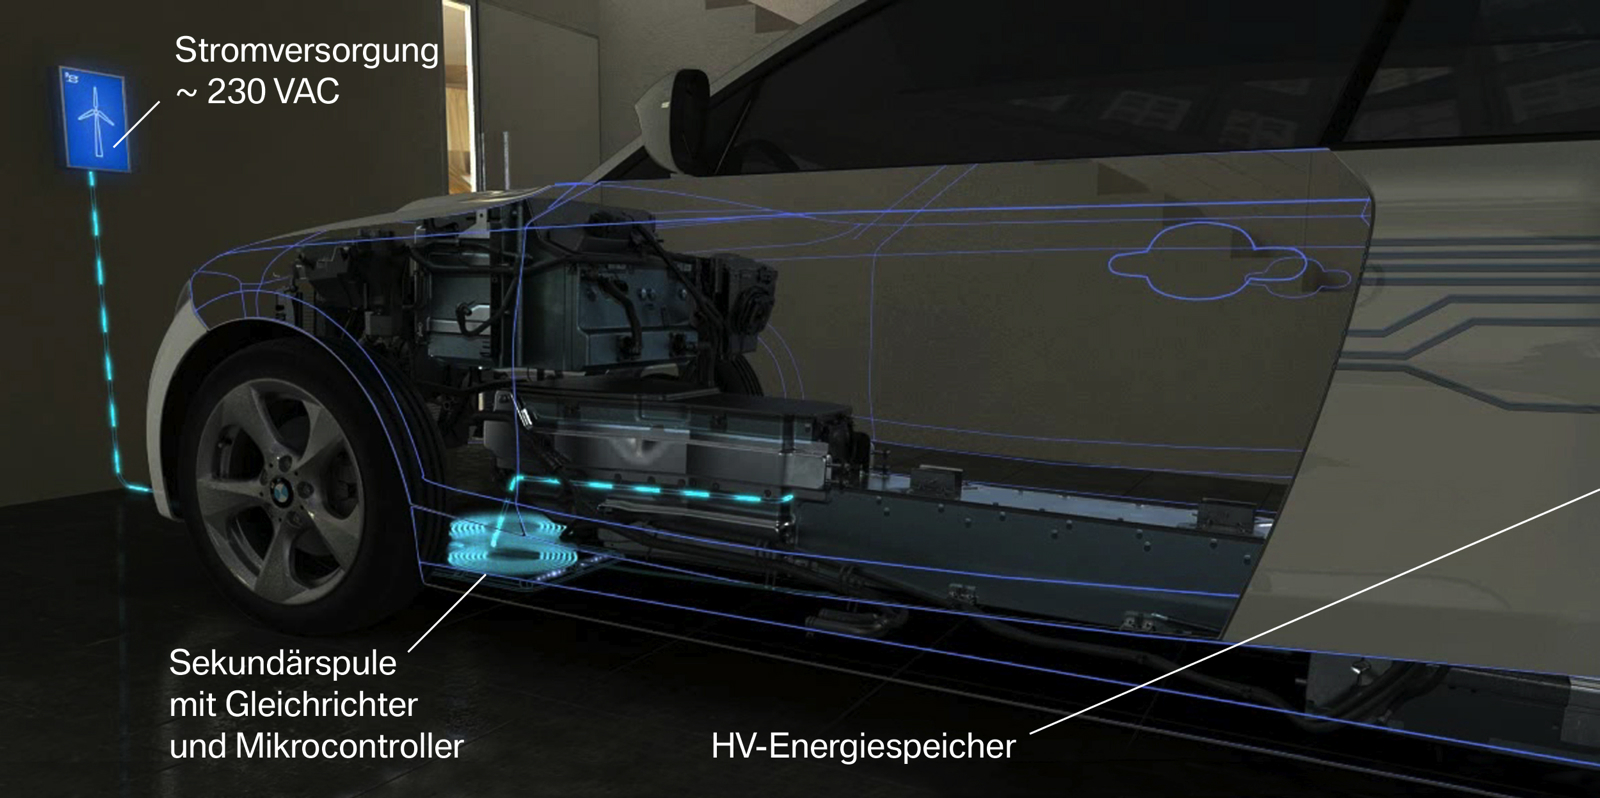 Bmw Continues Development Of Systems For Inductive Charging Of